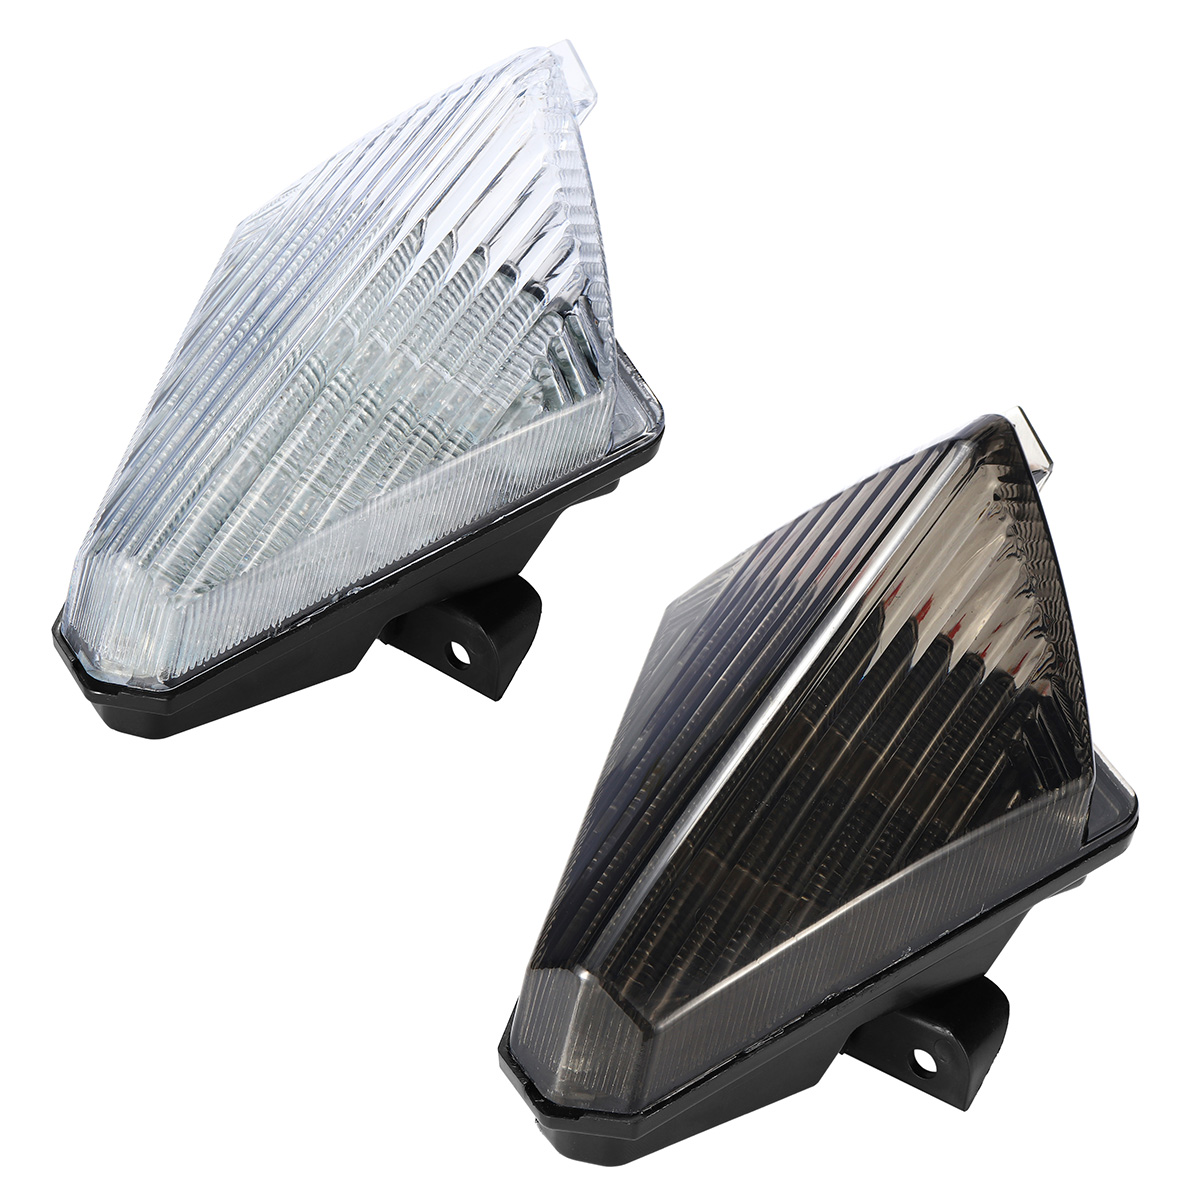 Motorcycle Rear Tail Light Back LED Turn Signal For YAMAHA YZF R1 1000 2007-2008